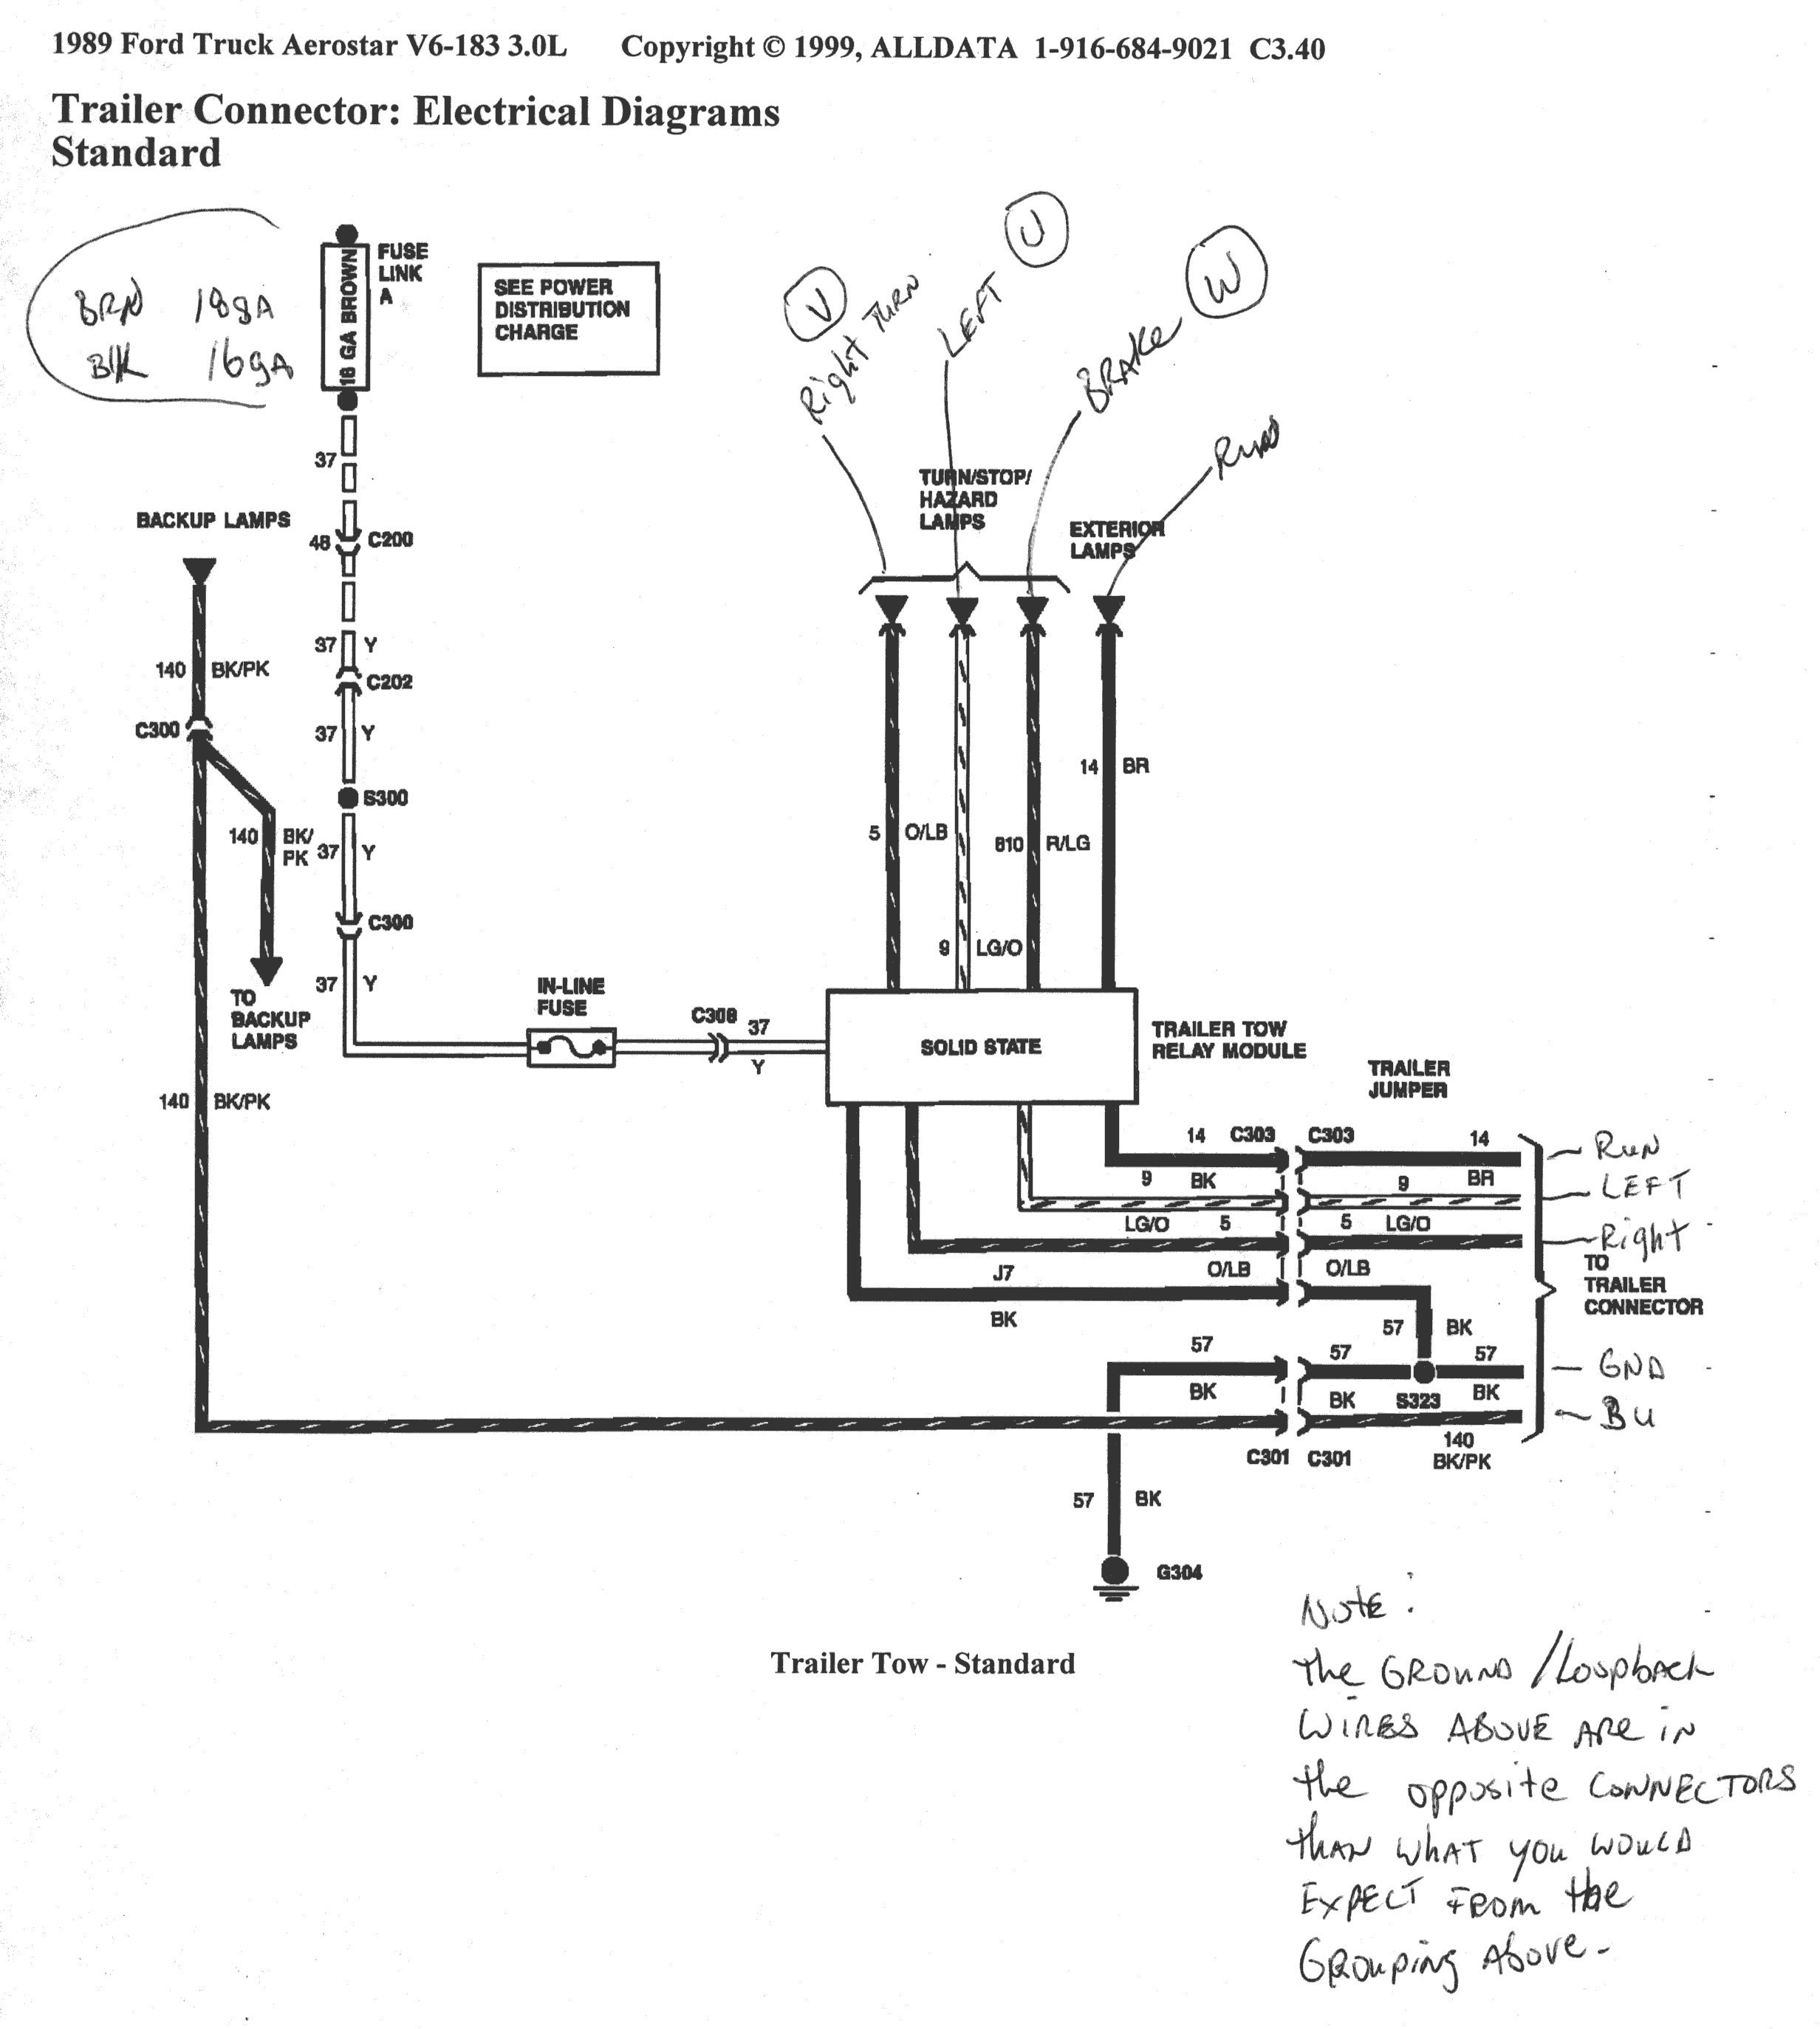 Ford Parts Wiring Library 1954 8n Diagram Schematic 4 Way Trailer F 250 List Of Circuit 1997